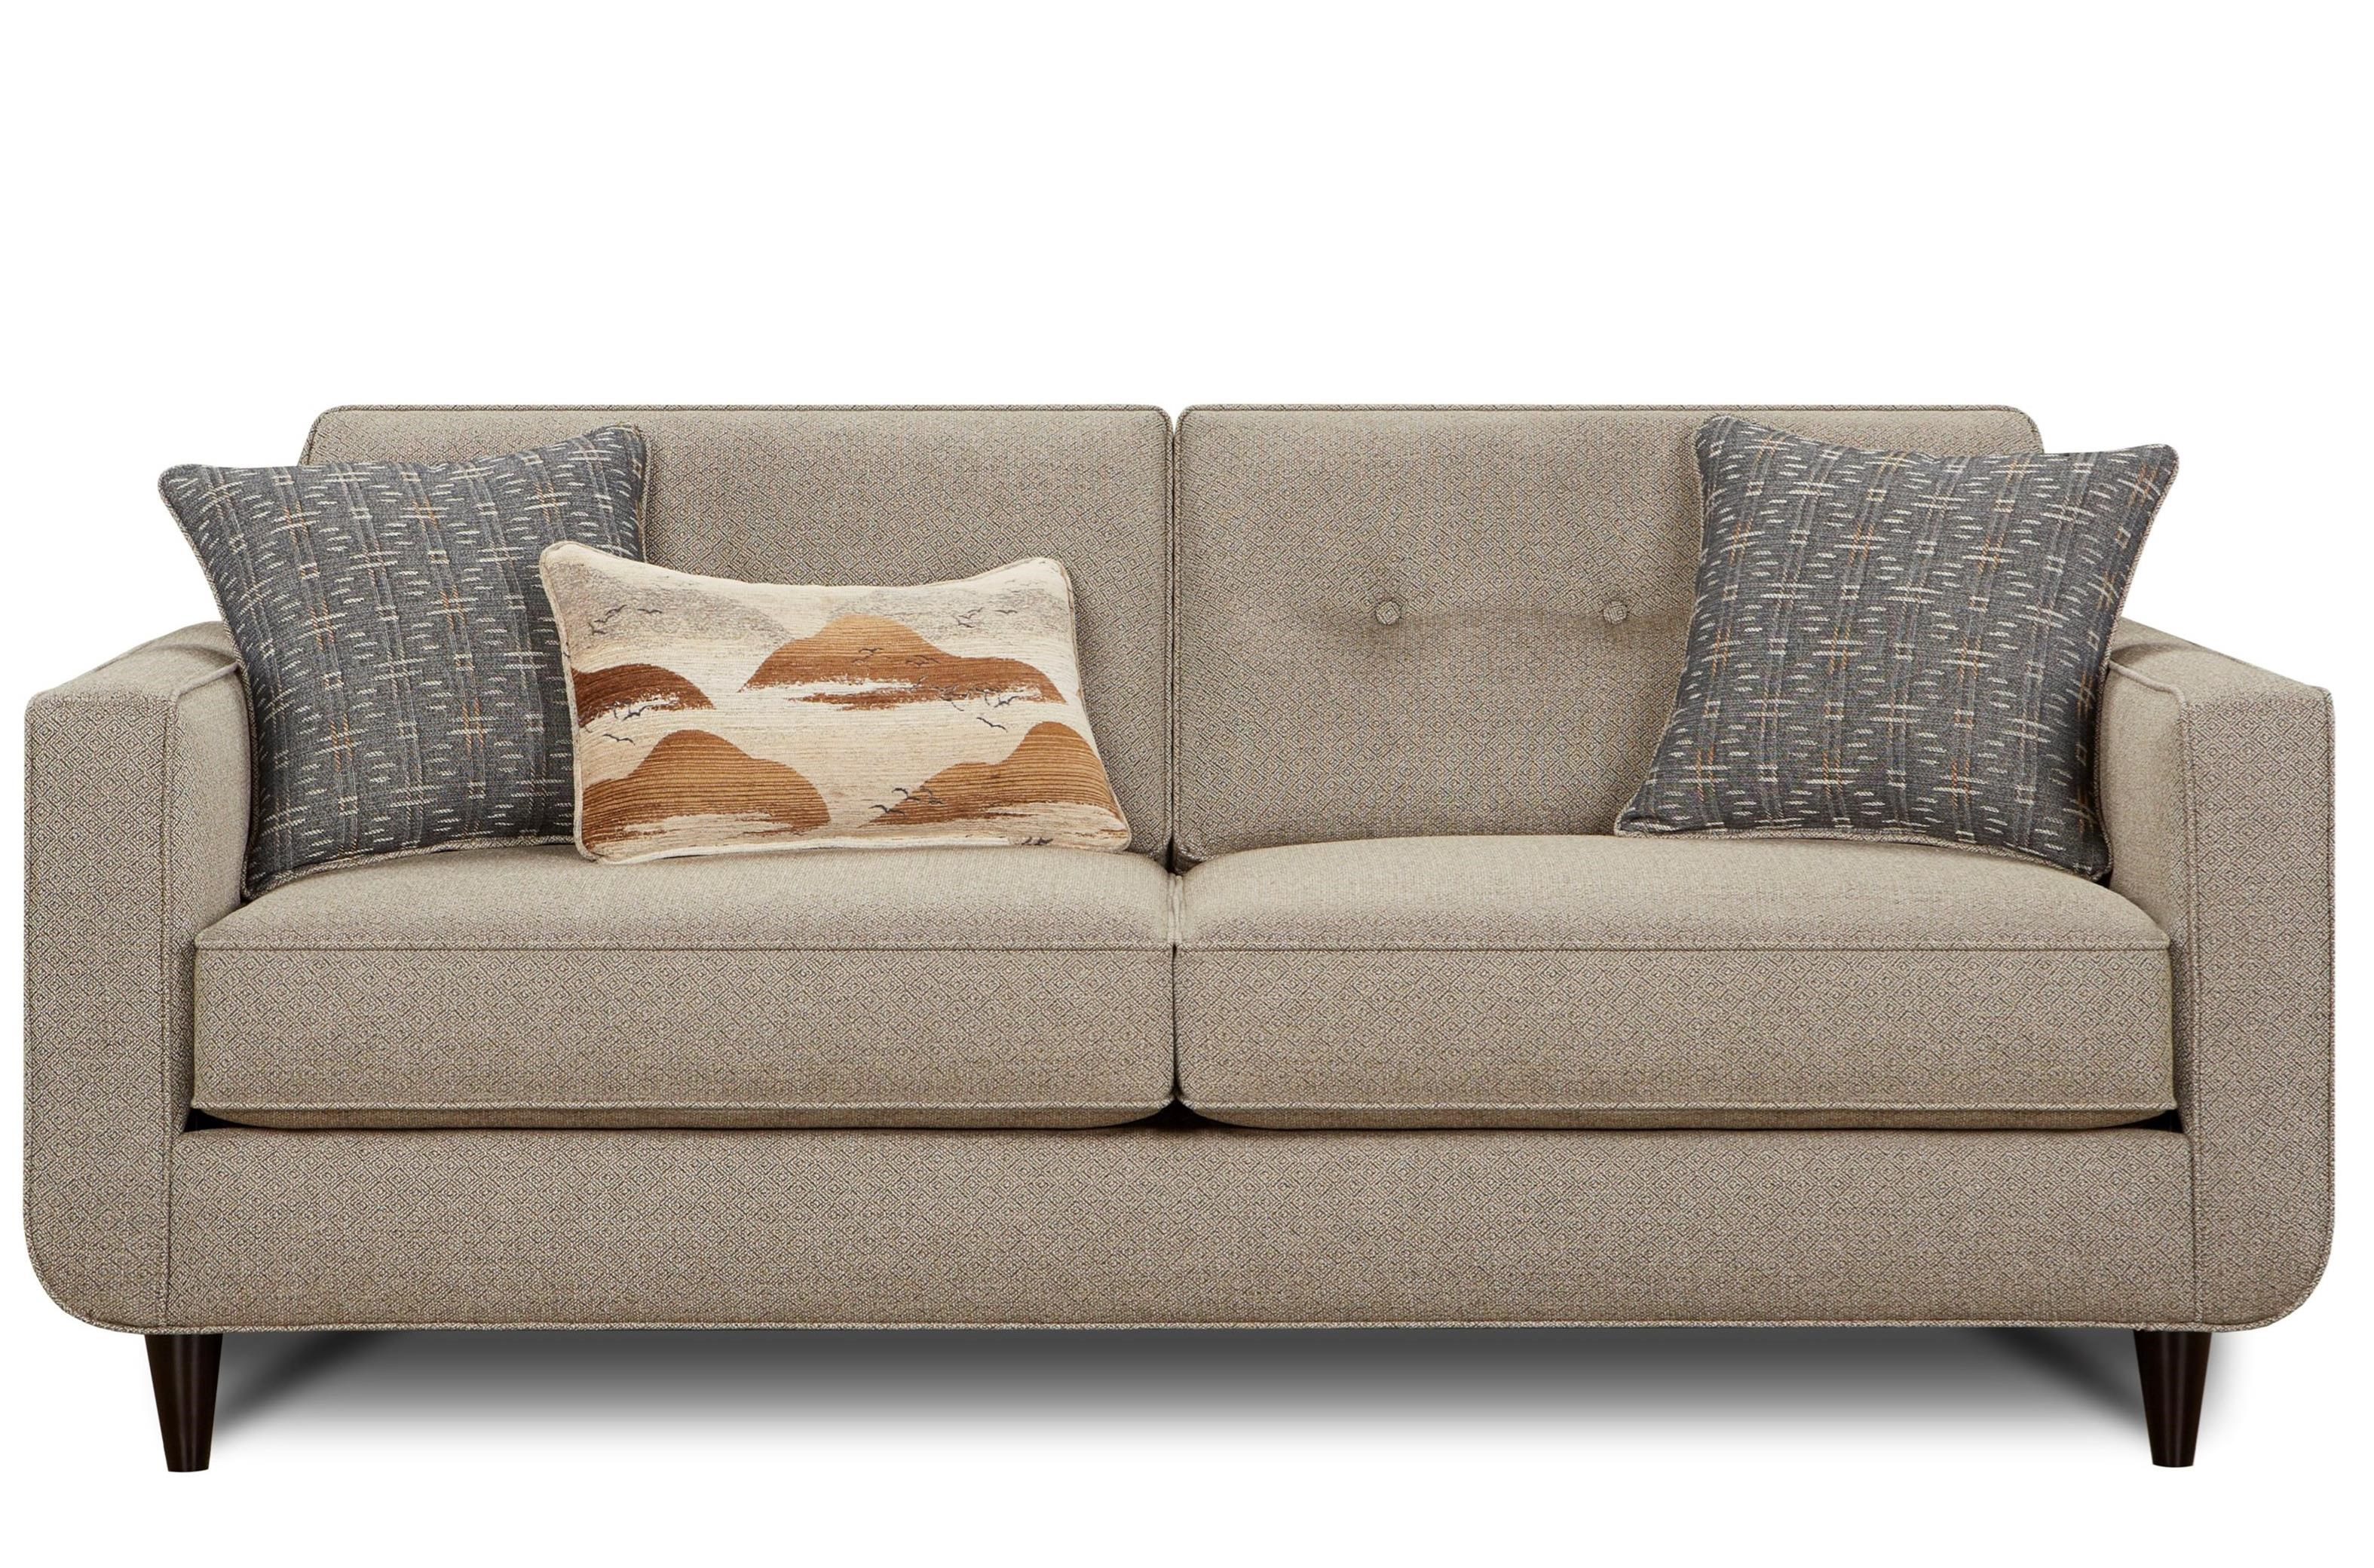 VFM Signature 1850 Sofa - Item Number: 1850-KPJolene Stone